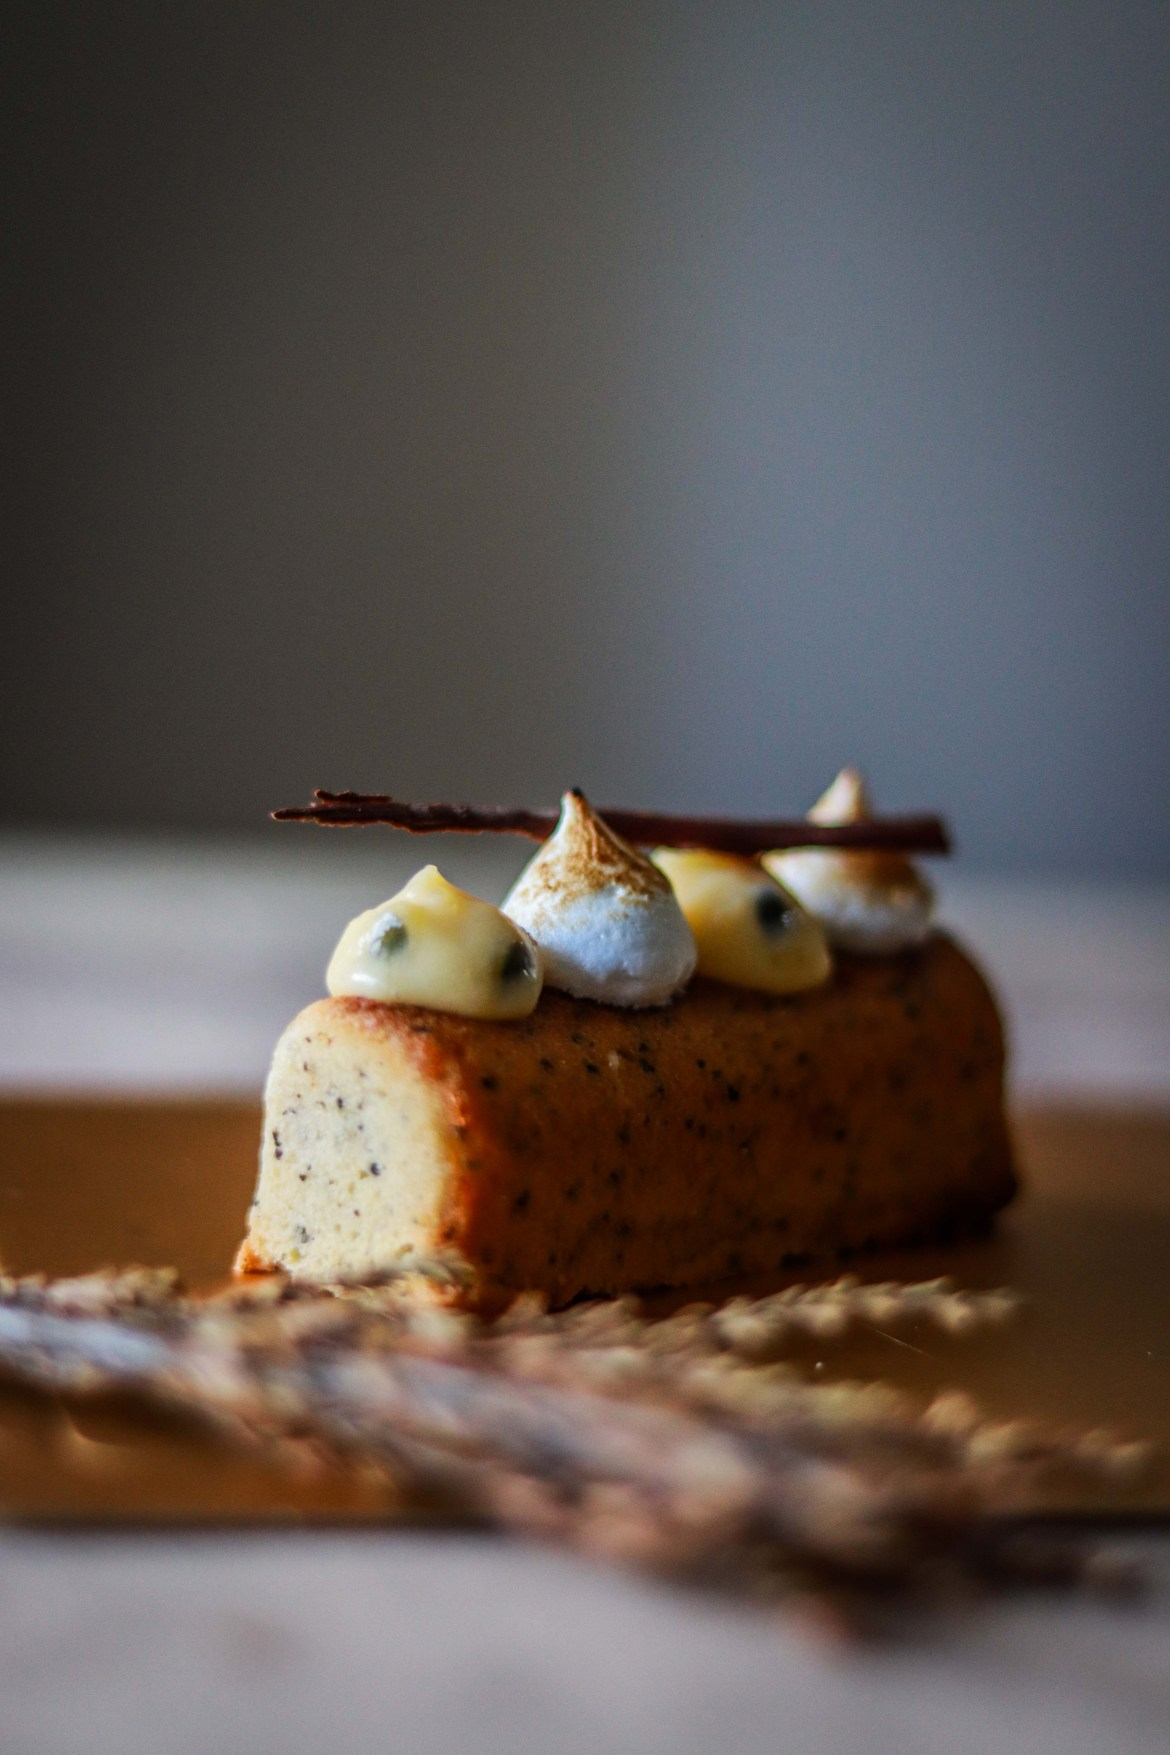 Earl_Grey_Cake_with_Passionfruitcurd_and_Toasted_Meringue3